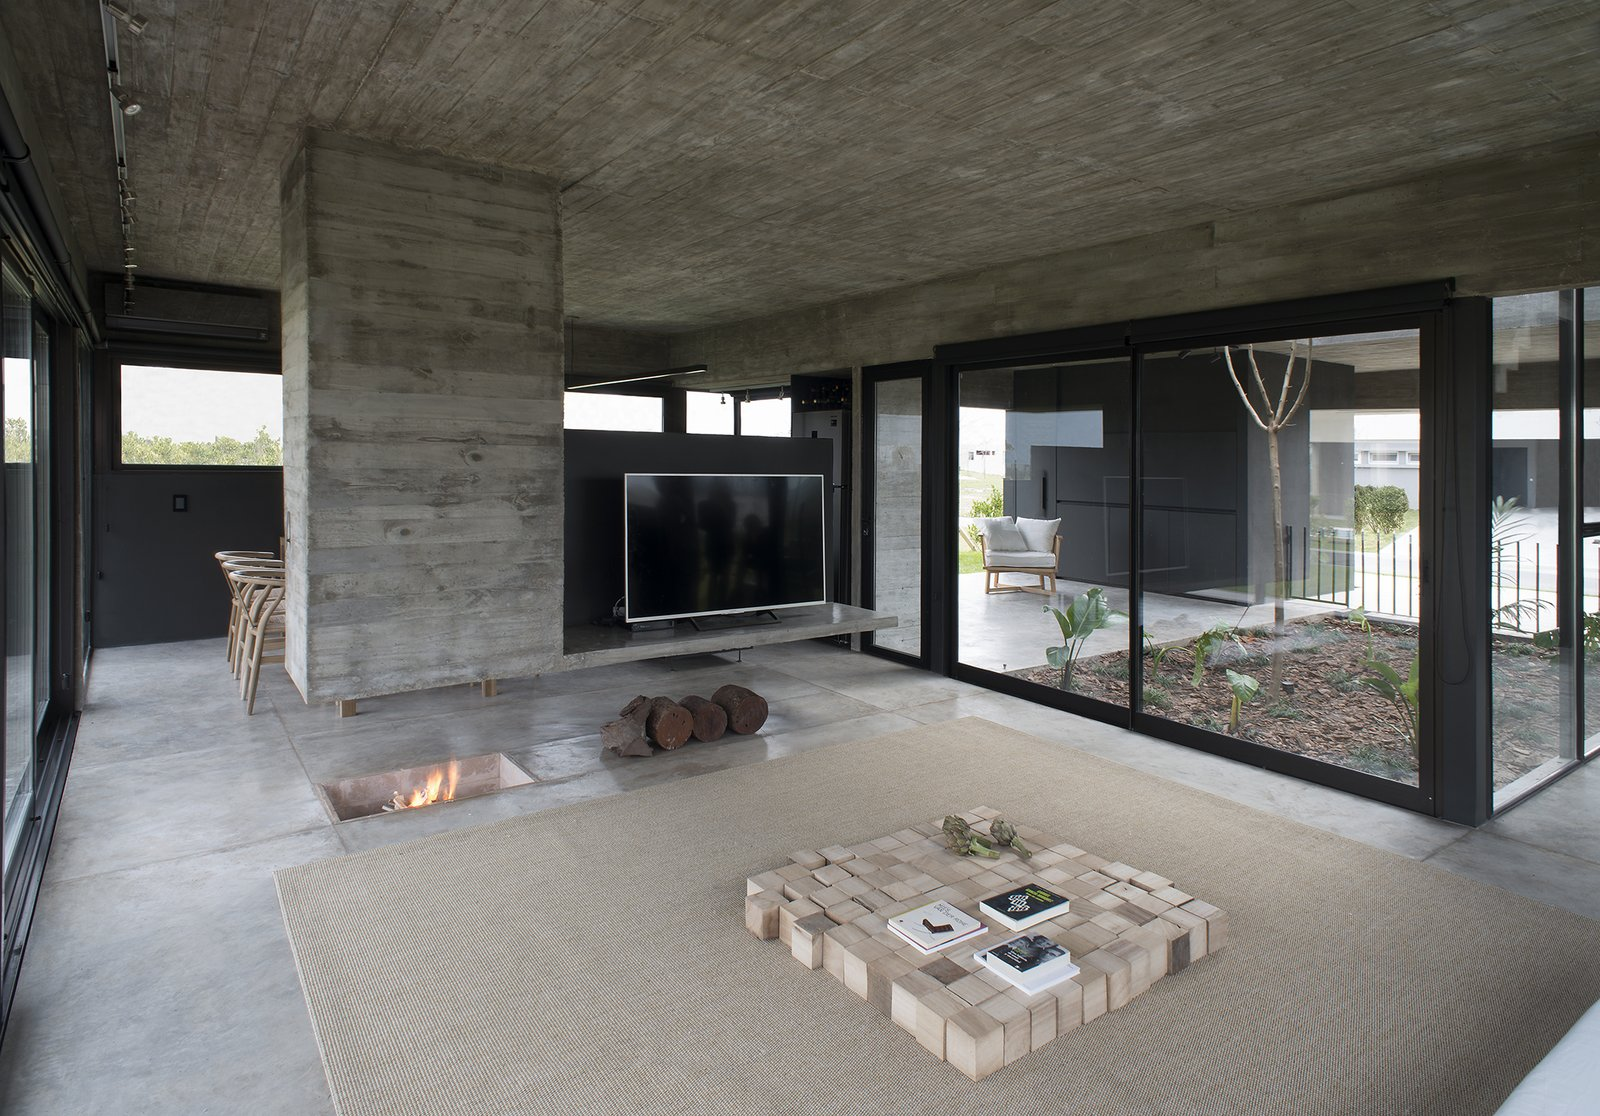 Living Room, Coffee Tables, Ceiling Lighting, Hanging Fireplace, Two-Sided Fireplace, Concrete Floor, Rug Floor, Carpet Floor, and Wood Burning Fireplace Castaños House by Arch. Ekaterina Kunzel & Arch. María Belén García Bottazzini  Castaños House